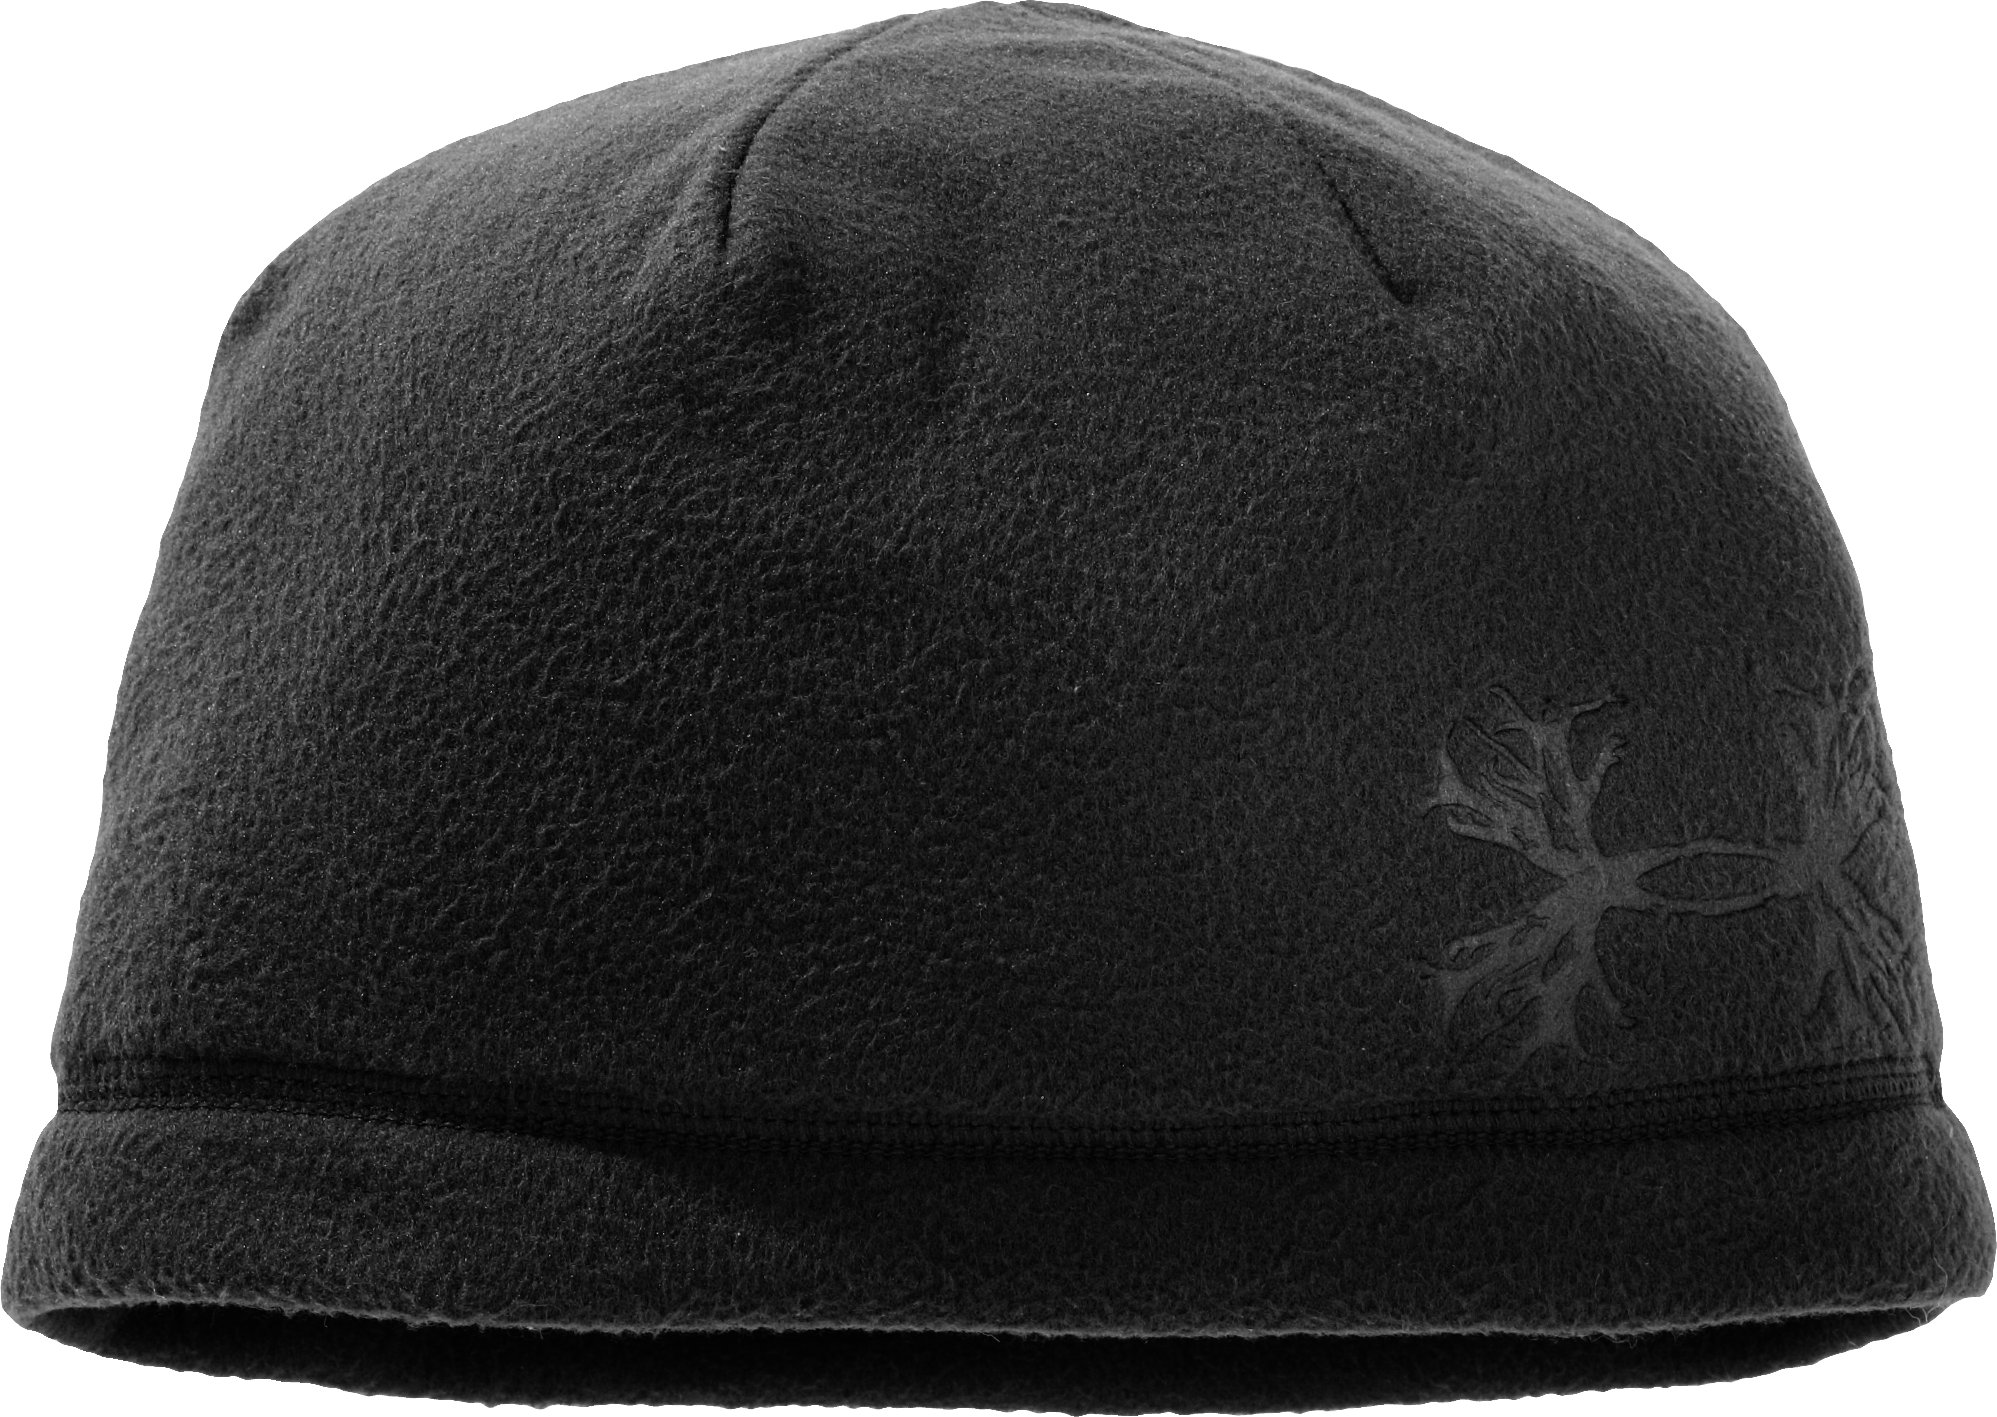 Men's Antler Fleece Beanie, Black , zoomed image